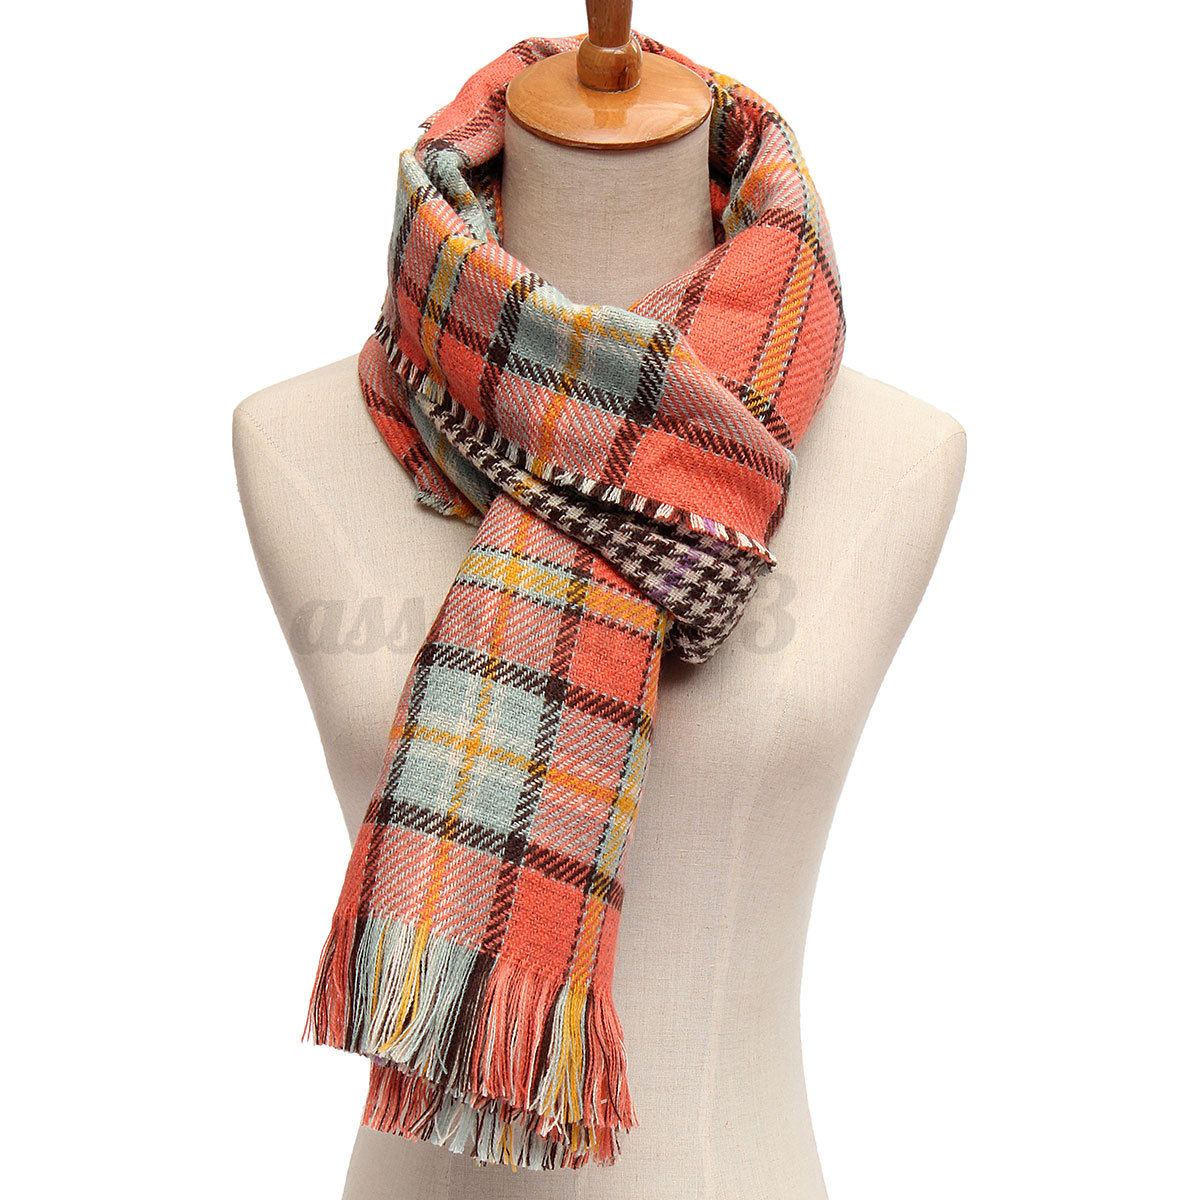 Wool Scarves. If you are looking for something cosy and stylish to ward off winter chills, look no further than our women's aran scarf range. Our Women's Aran Handknit Wool & Silk Scarves are a perfect addition to your winter wardrobe.